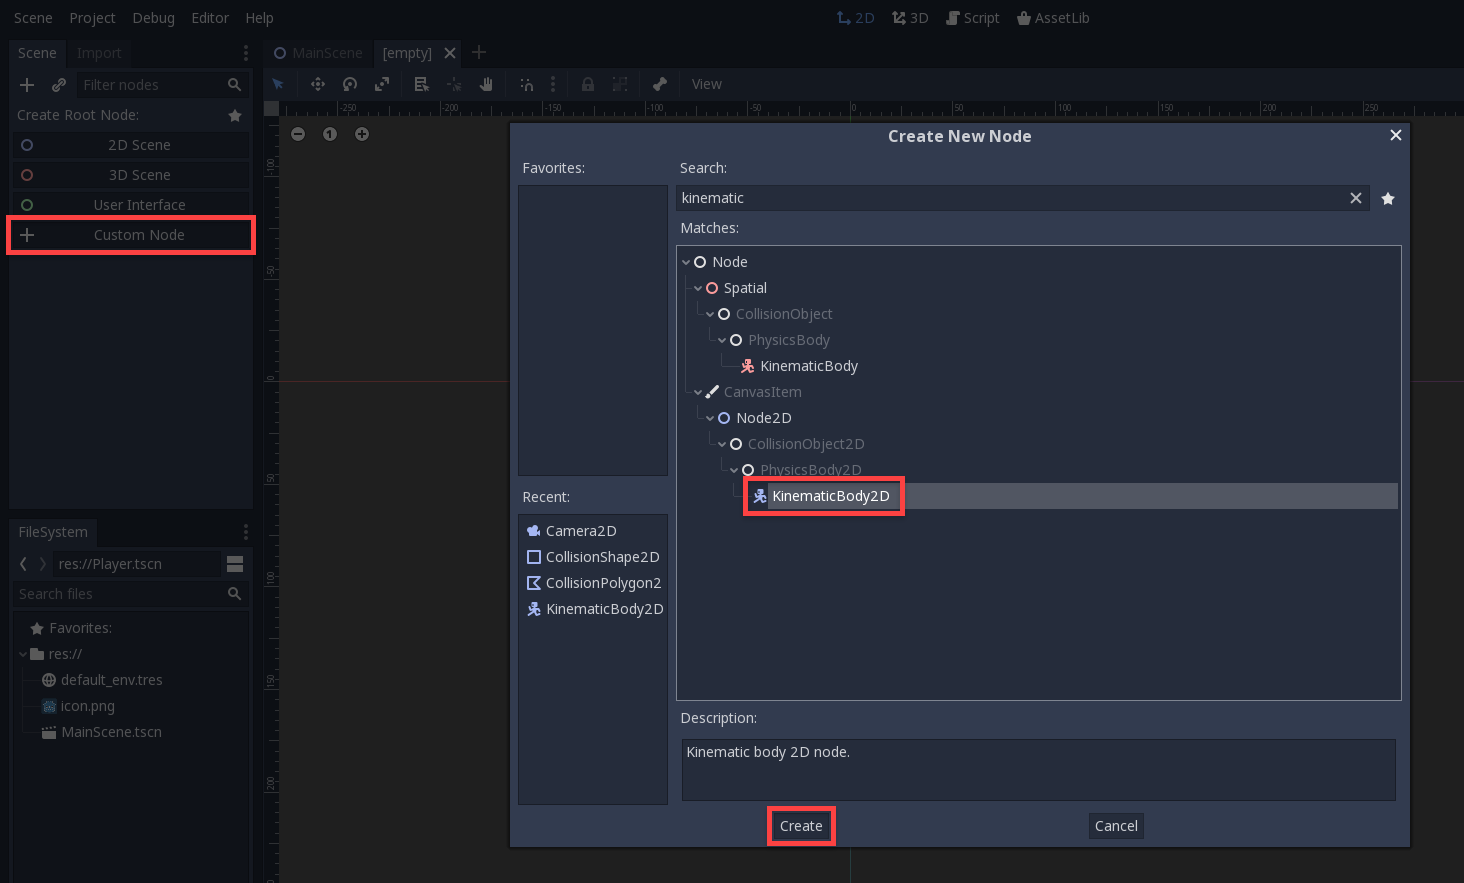 Godot Create New Node window with KinematicBody2D selected